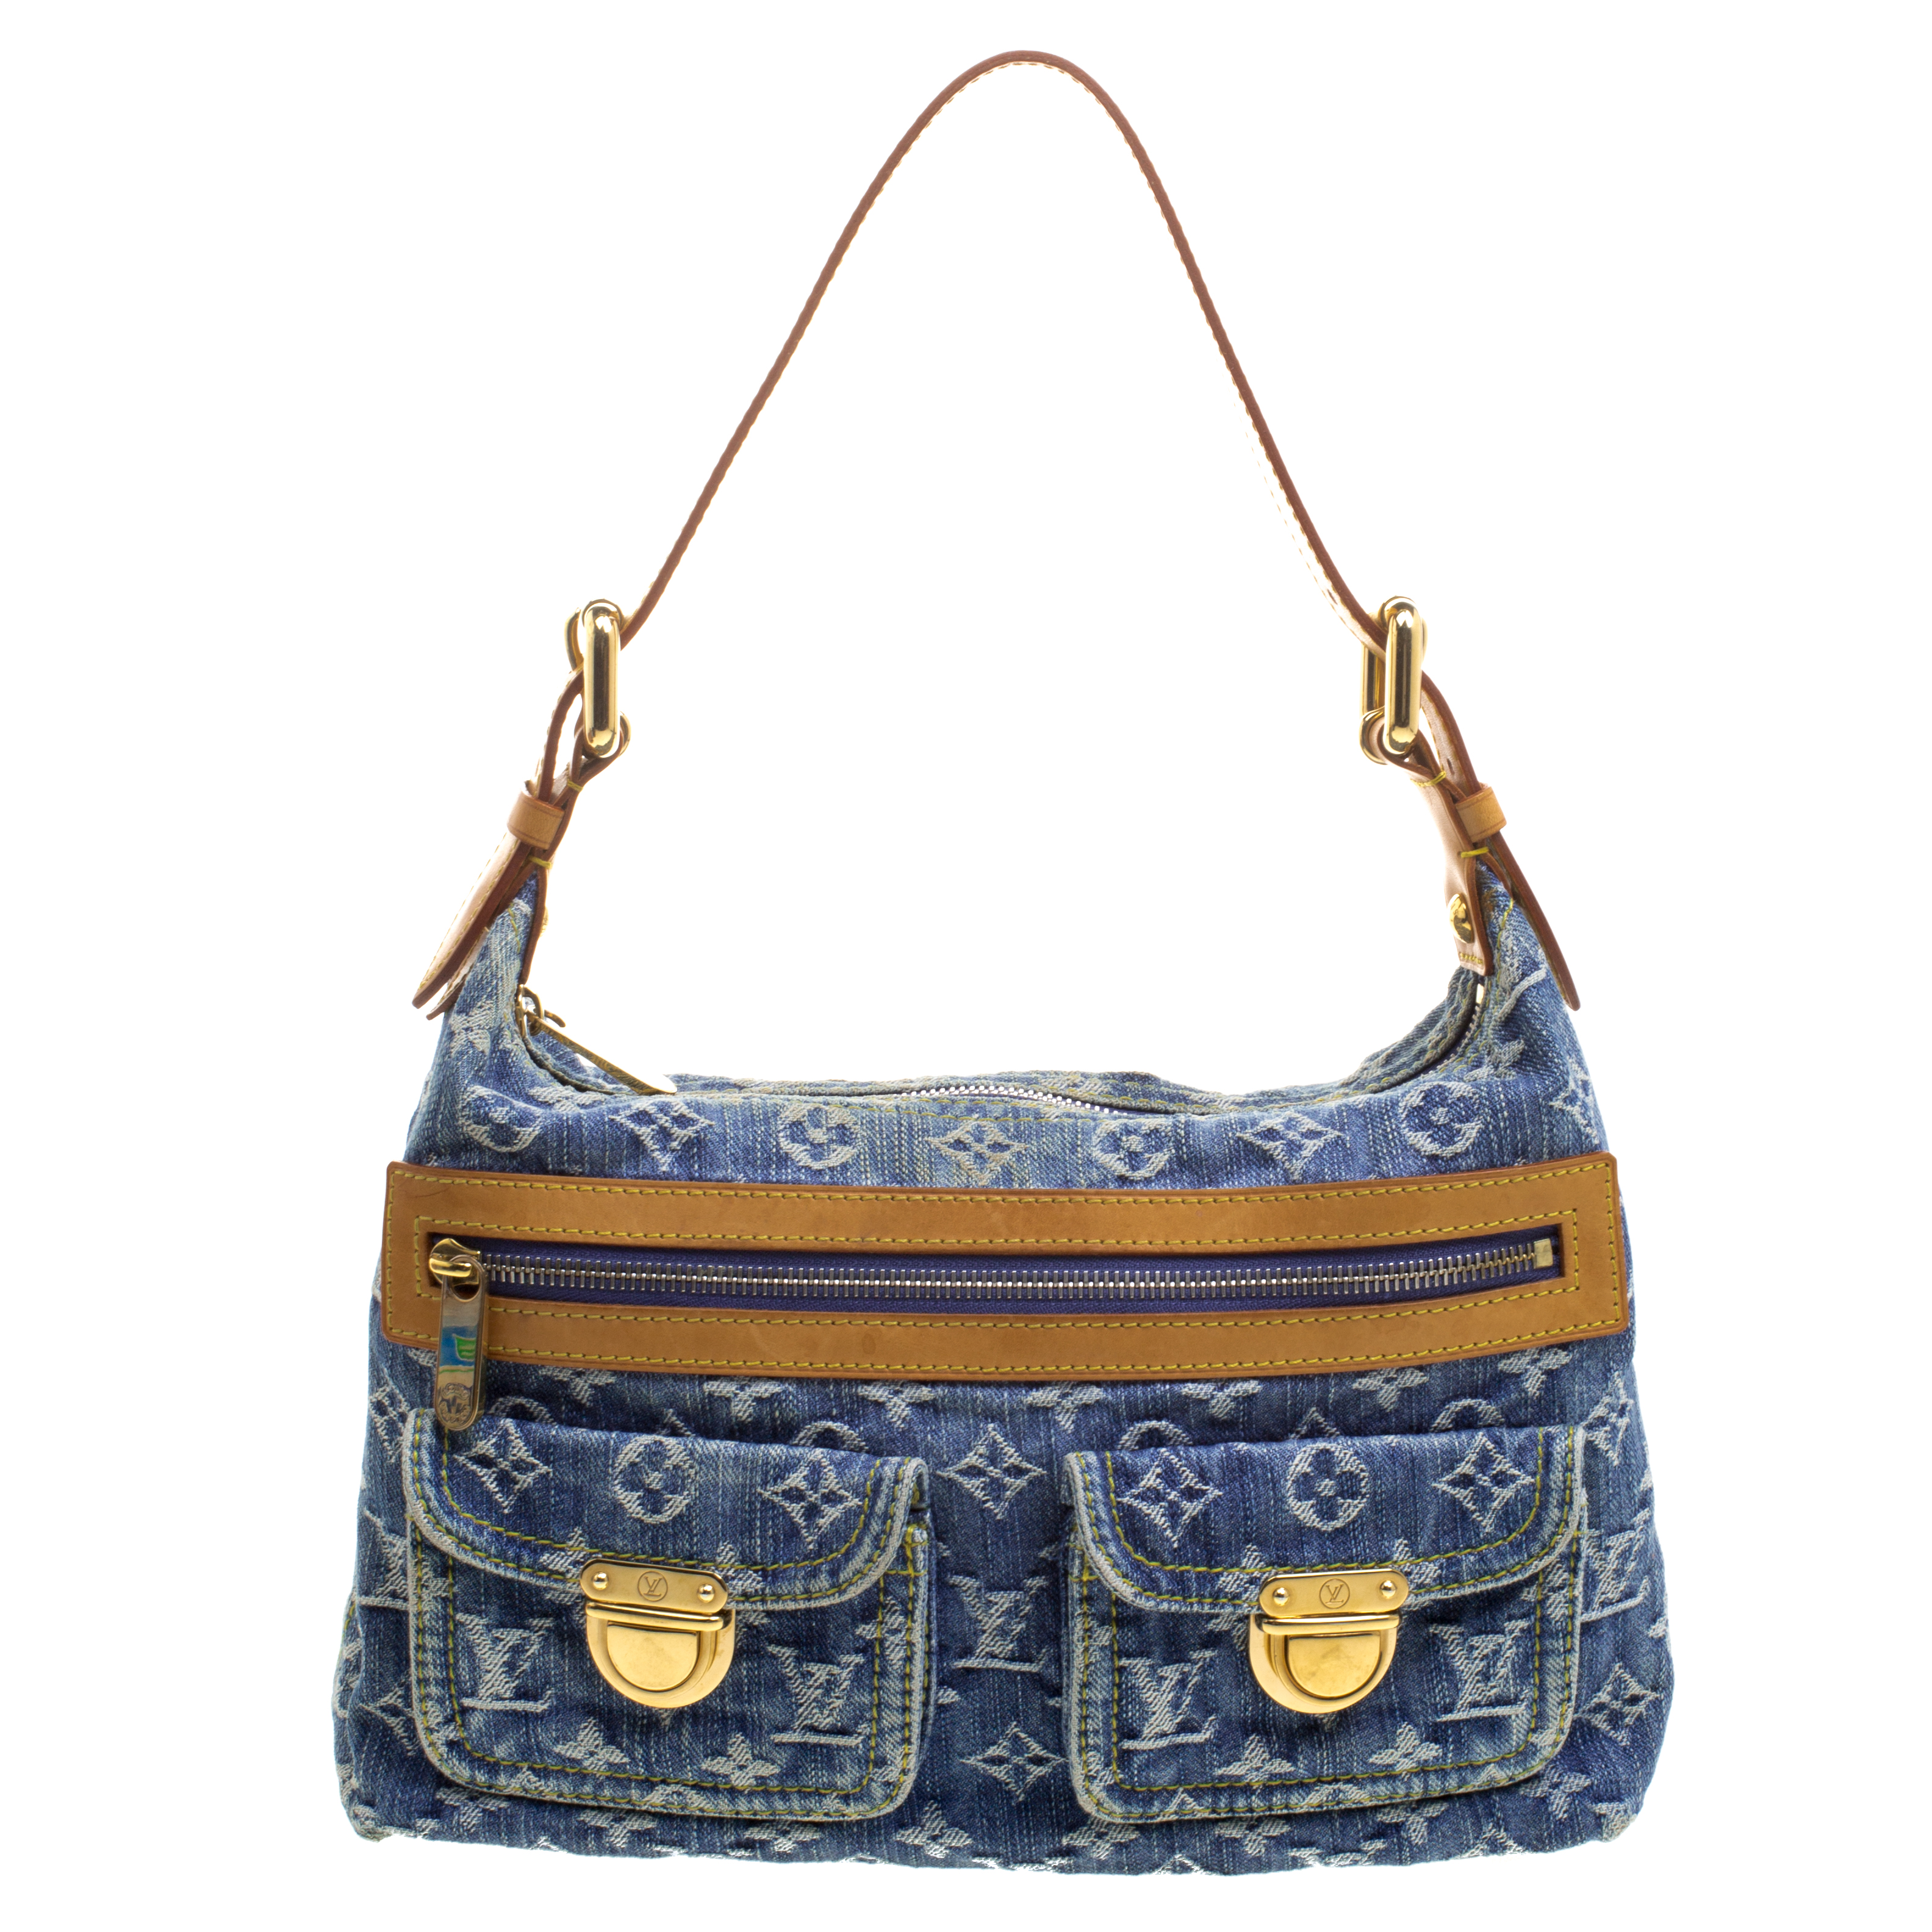 6741d2aa156d ... Louis Vuitton Blue Monogram Denim Baggy PM Bag. nextprev. prevnext